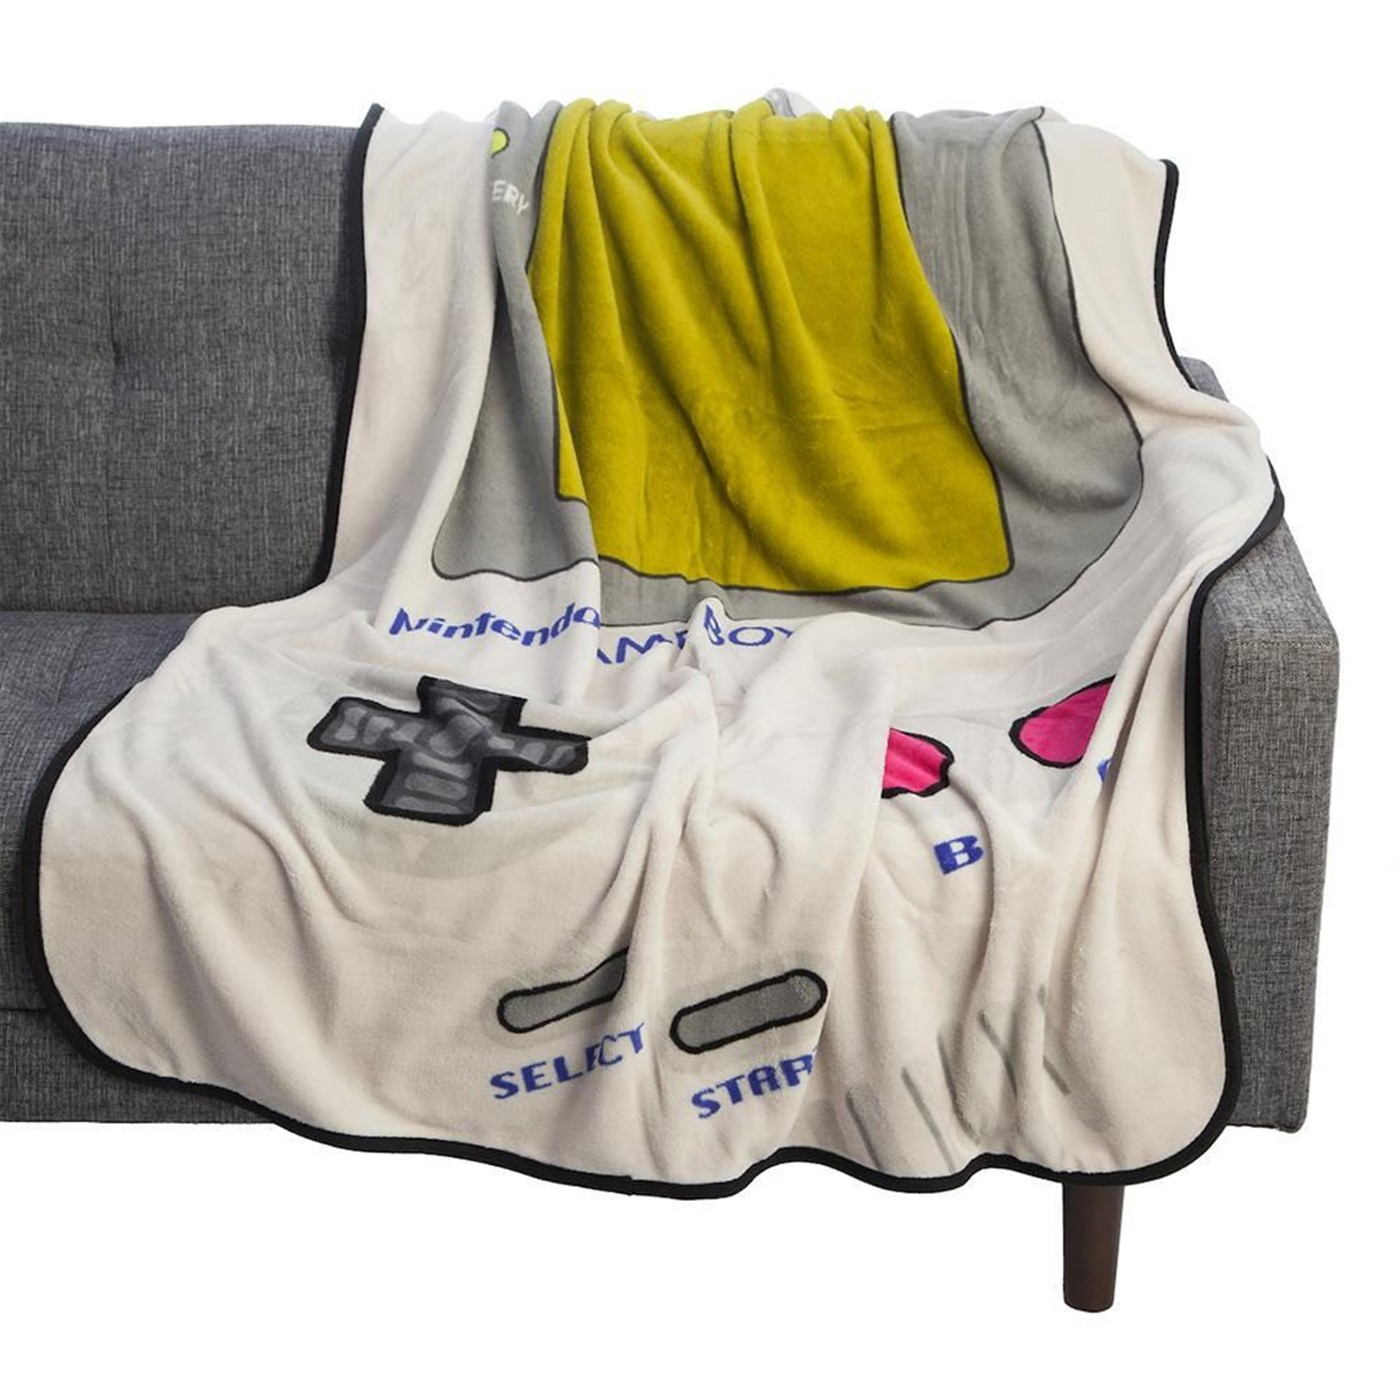 Nintendo Gameboy 48 X 60 In. Digital Fleece Throw